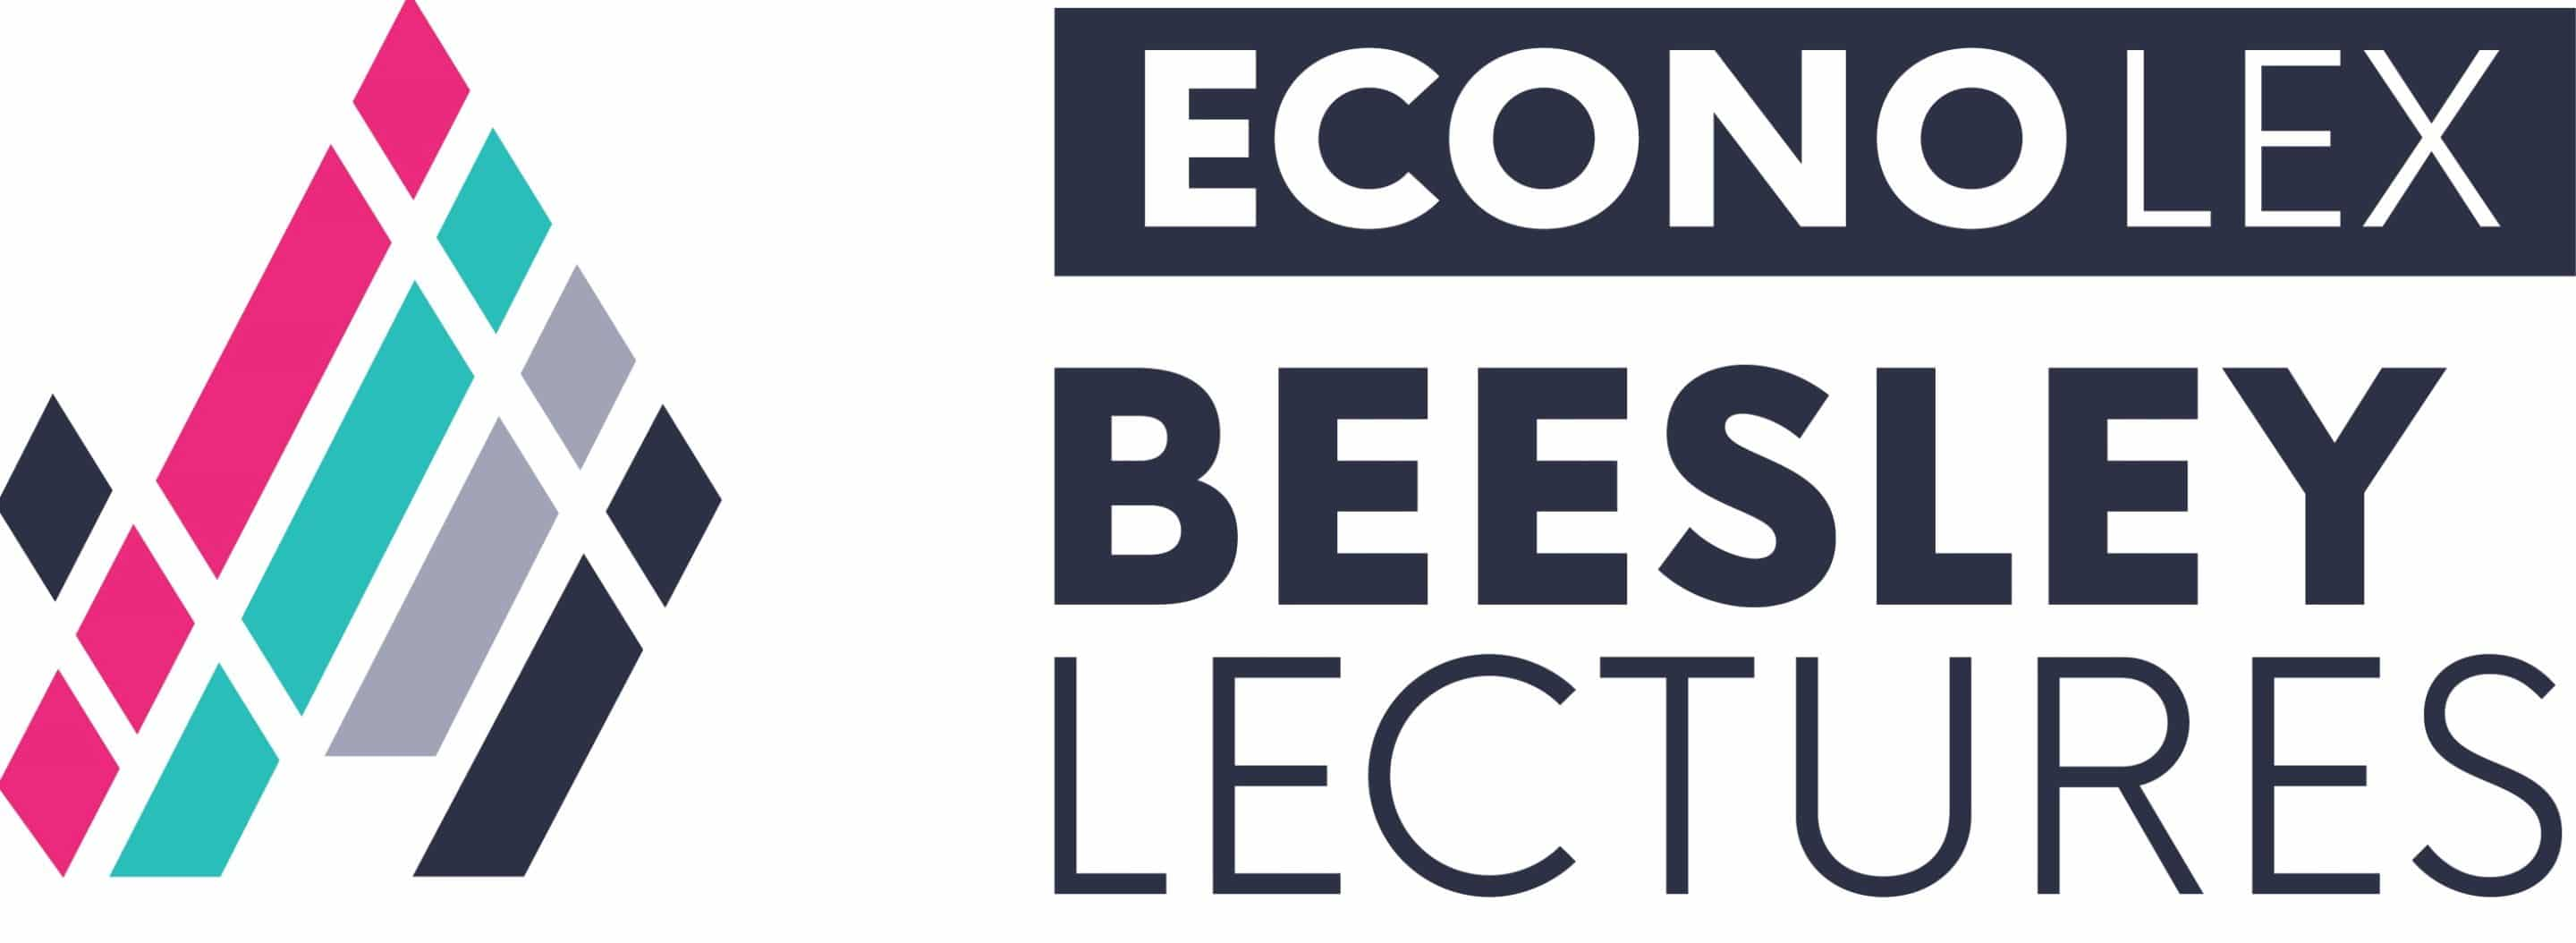 Beesley Lecture Series 2019 | Hosted by Econolex and the IEA